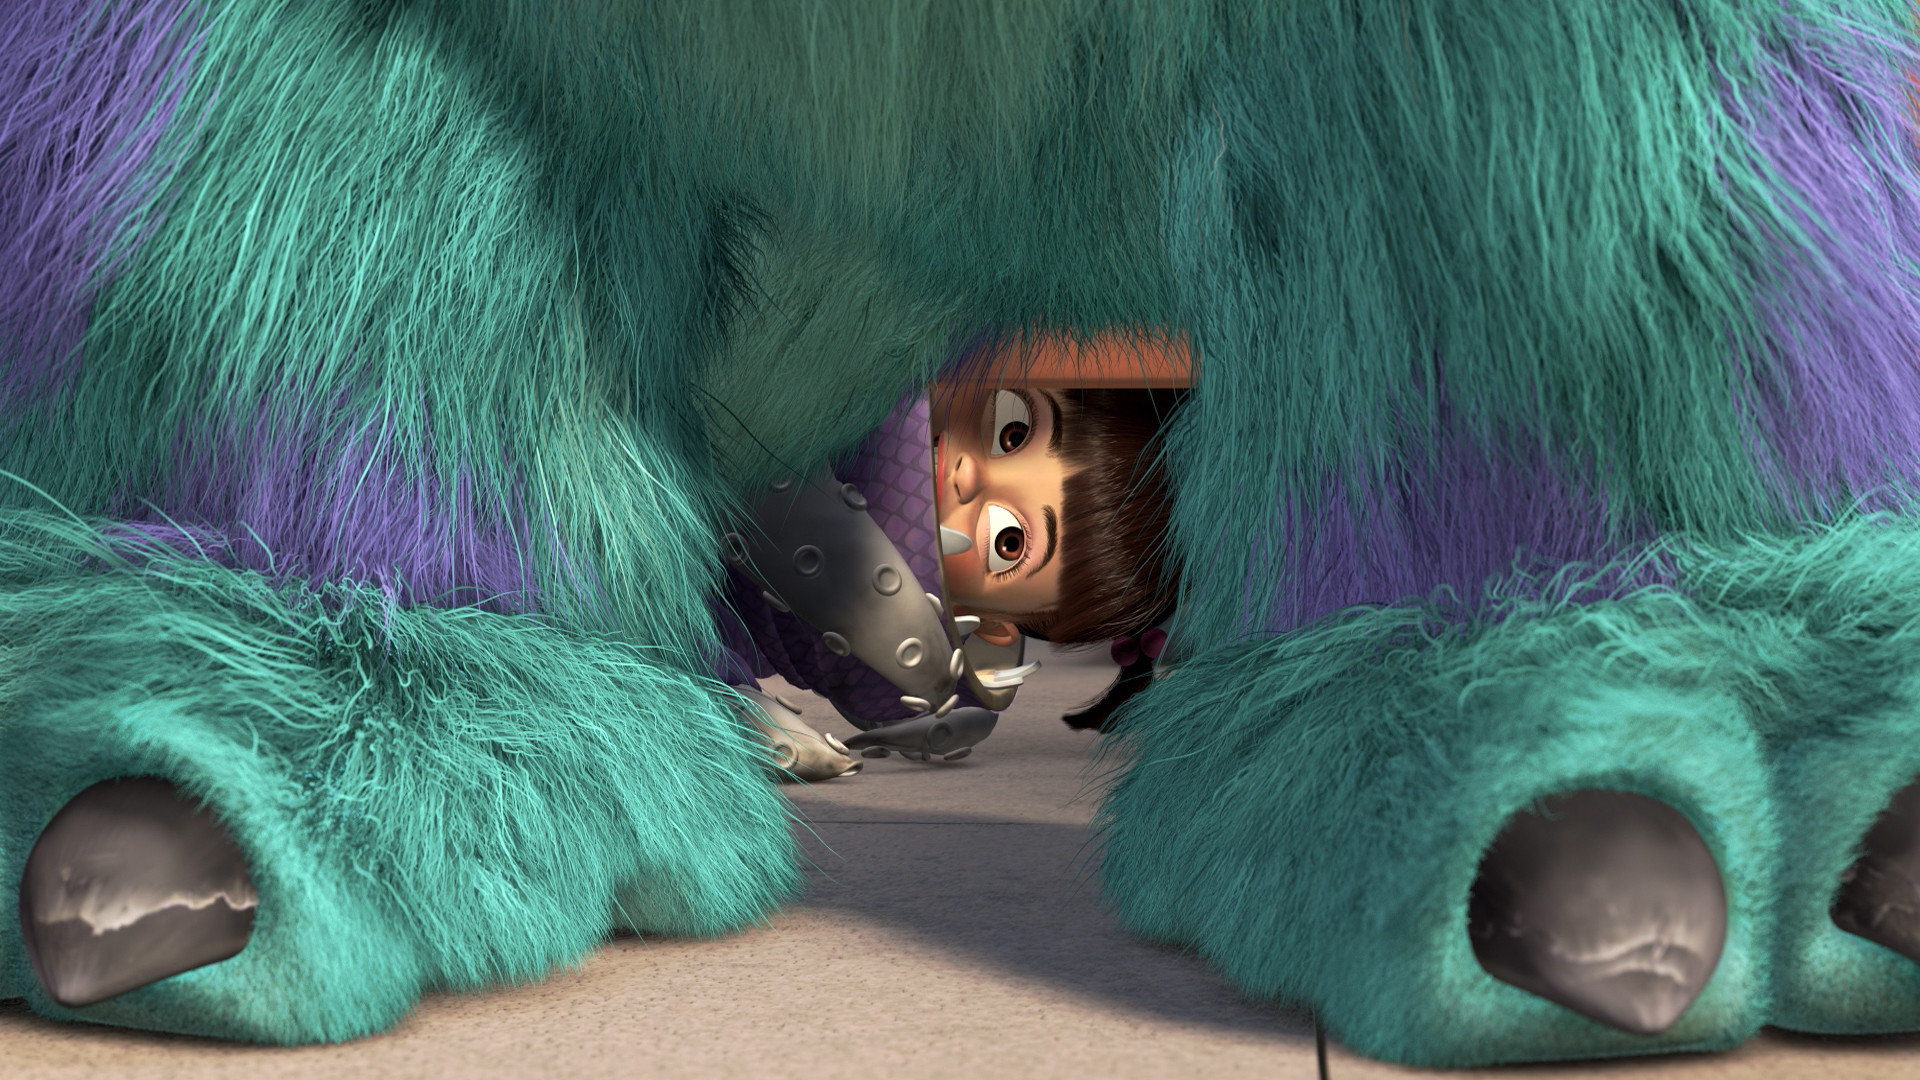 monsters, inc. full hd wallpaper and background image | 1920x1080